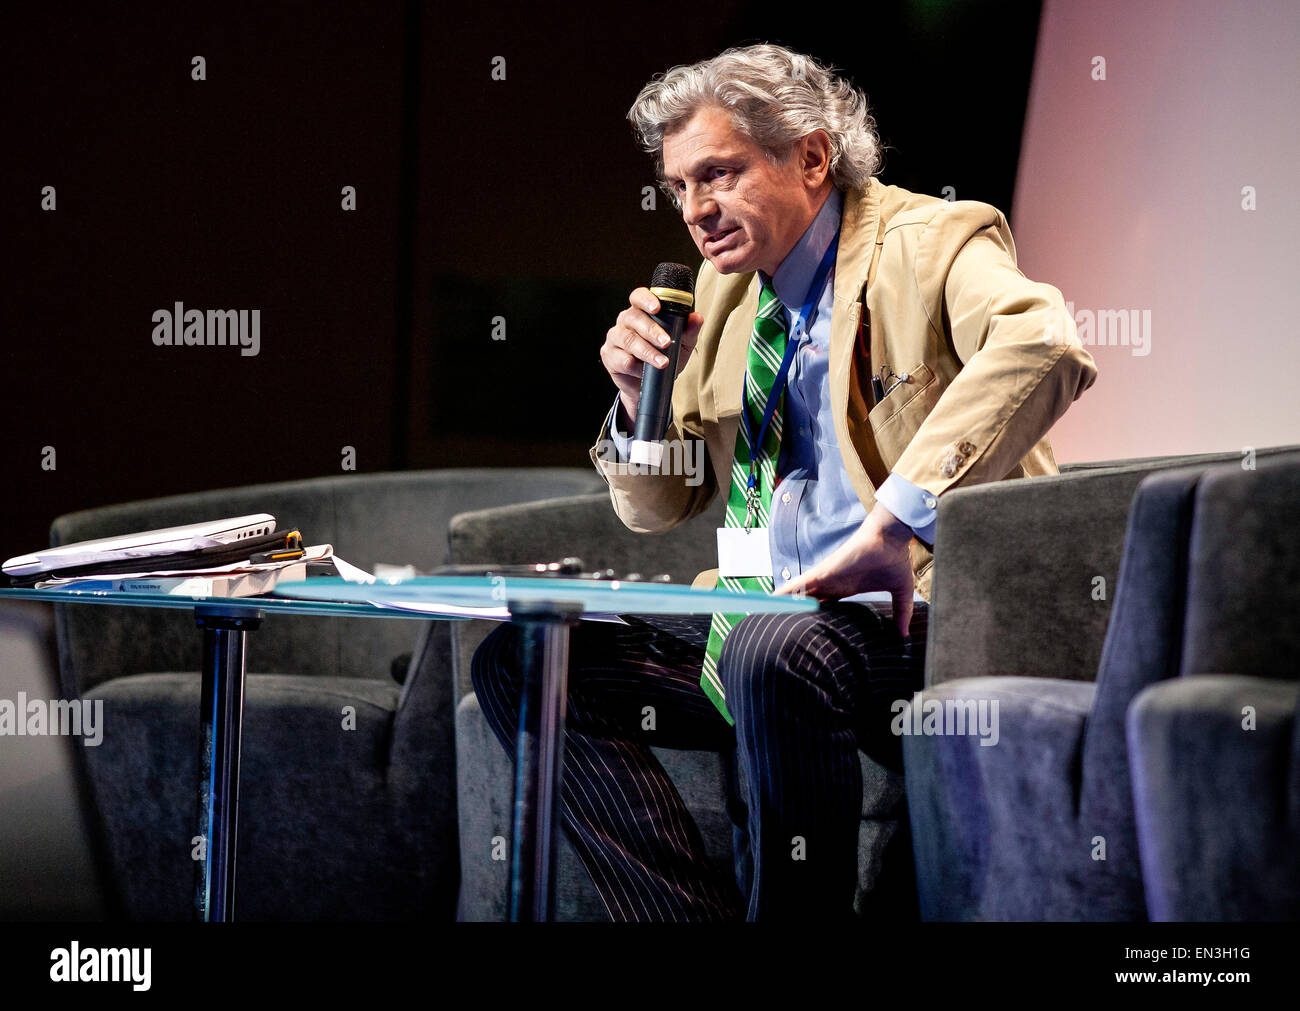 Journalist Alain Frachon of the French newspaper Le Monde - Stock Image